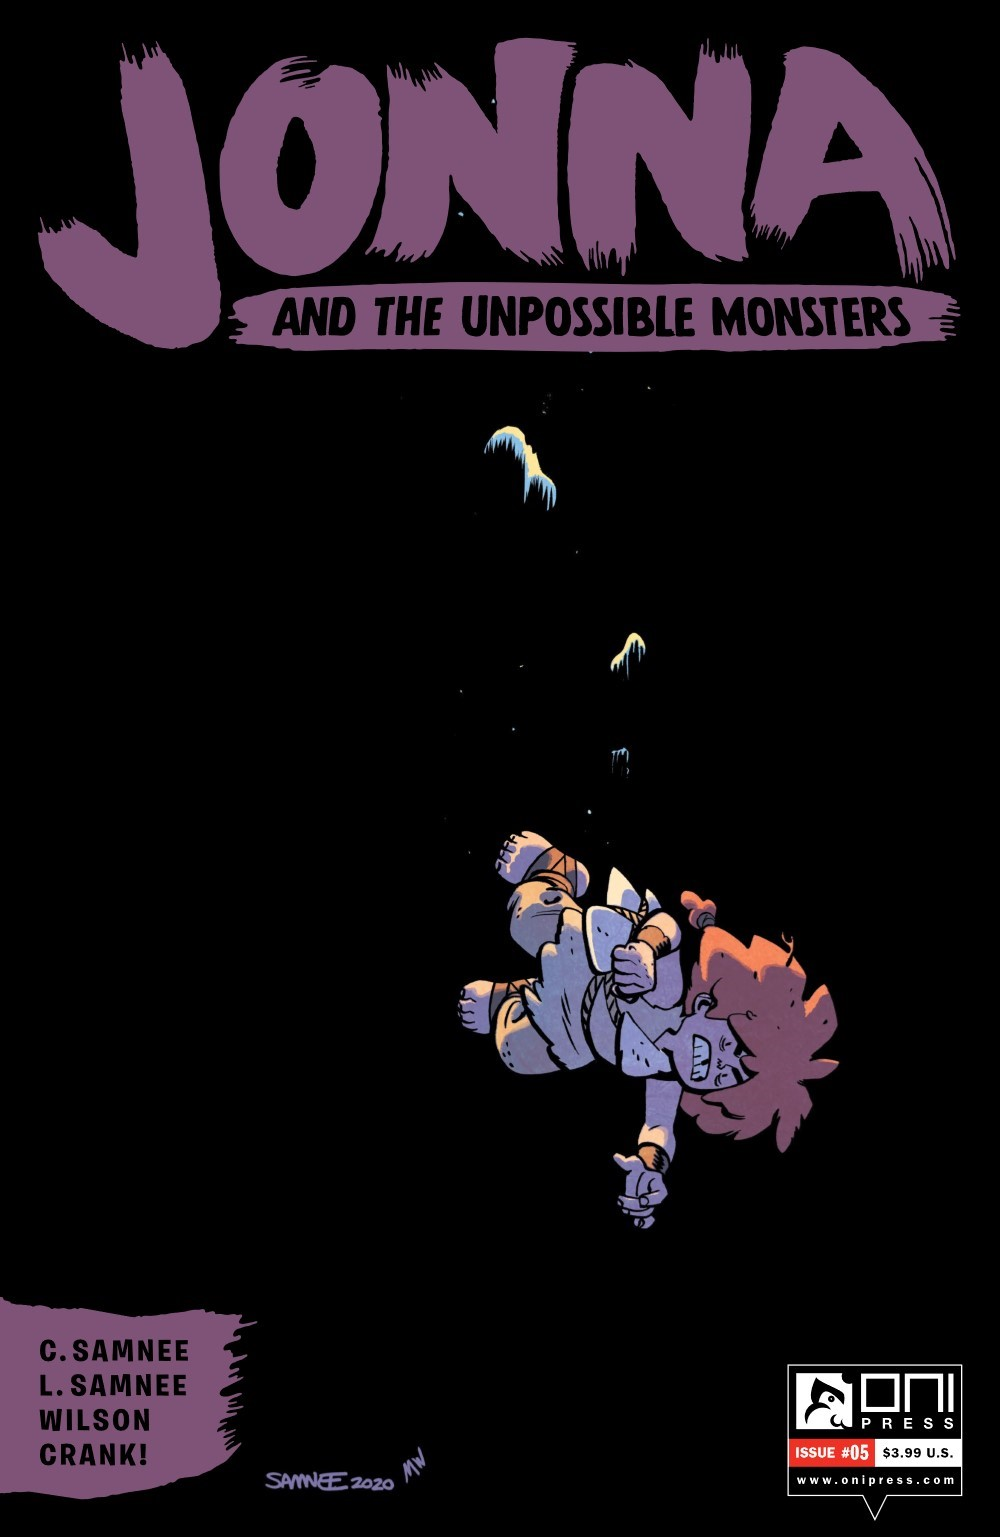 JONNA-5-REFERENCE-01 ComicList Previews: JONNA AND THE UNPOSSIBLE MONSTERS #5